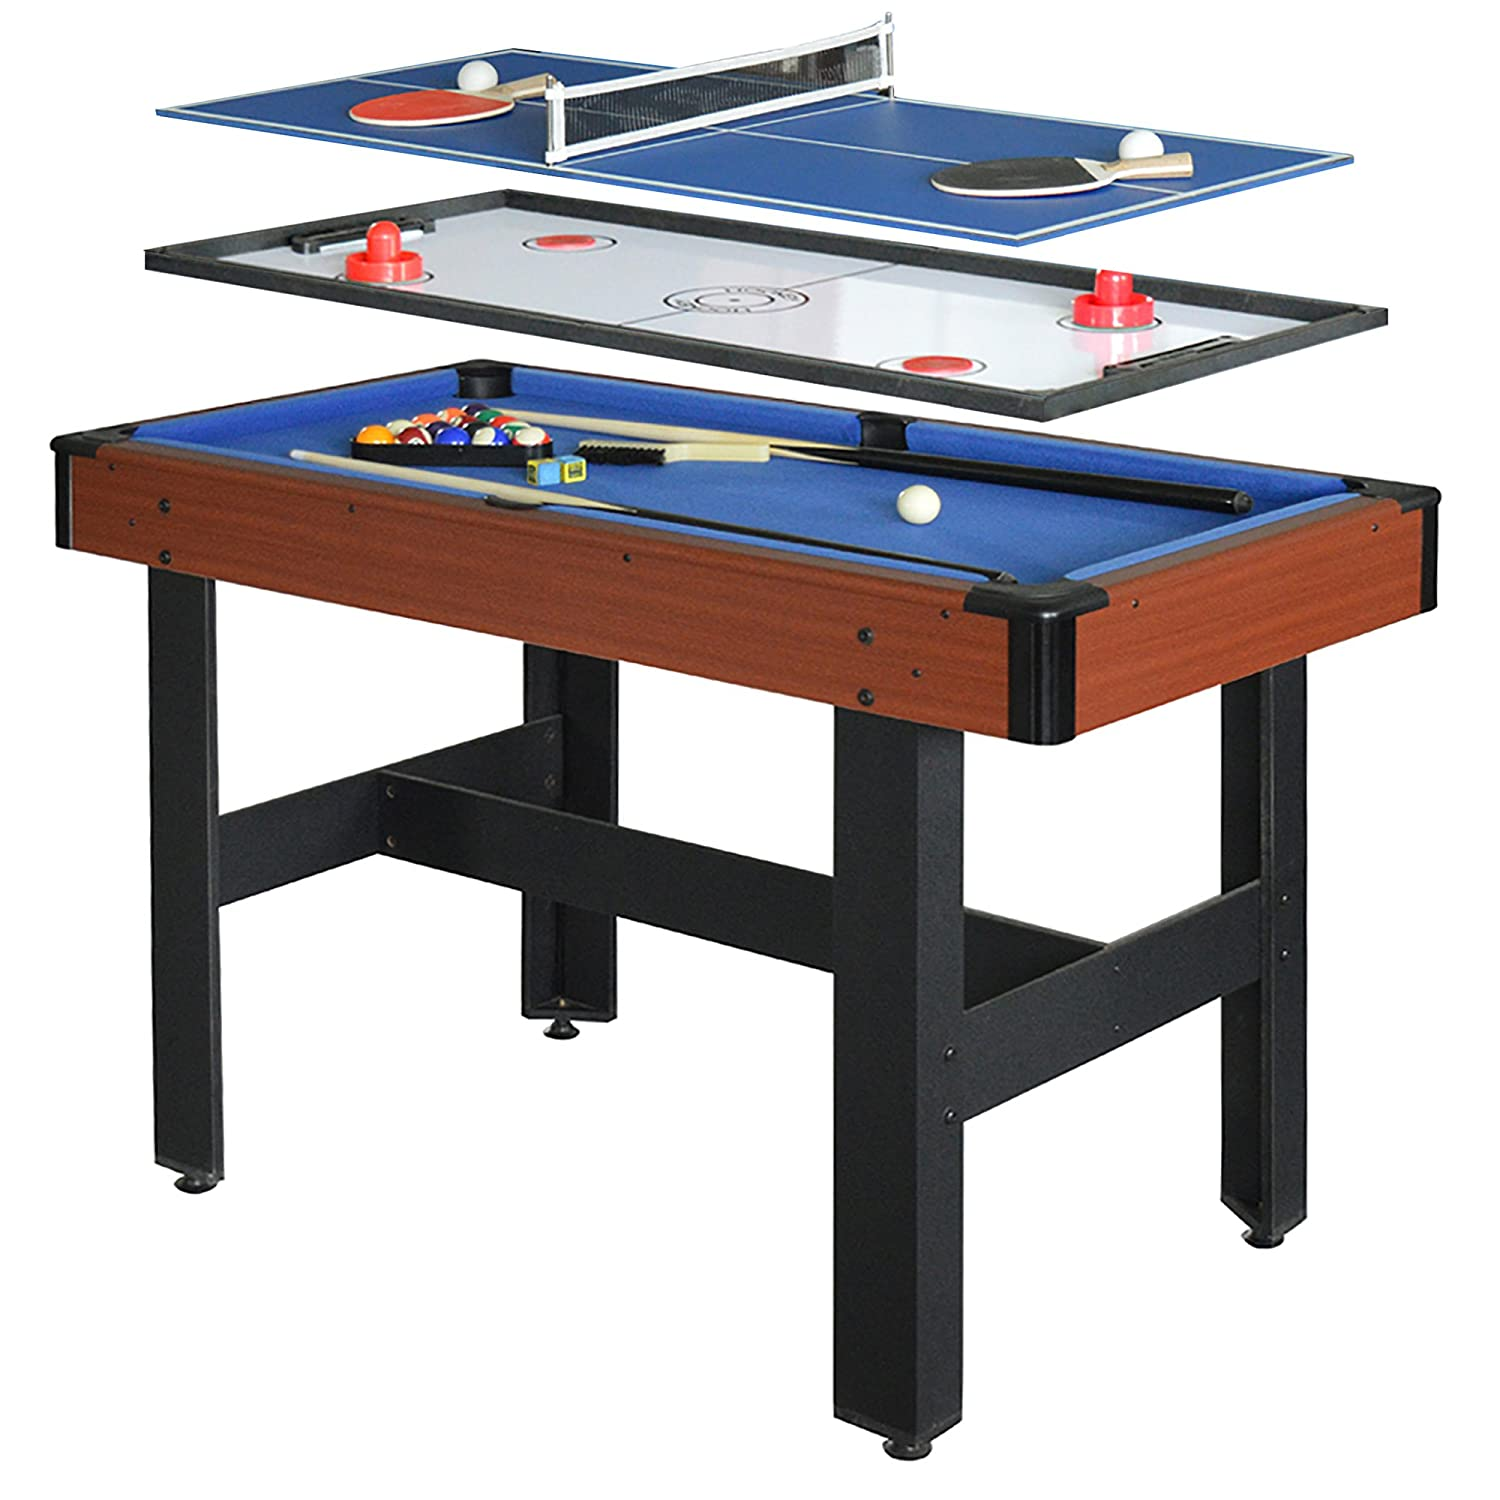 Amazon.com : Hathaway Triad 3 In 1 48 In Multi Game Table With Pool, Glide  Hockey, And Table Tennis For Family Game Rooms : Sports U0026 Outdoors